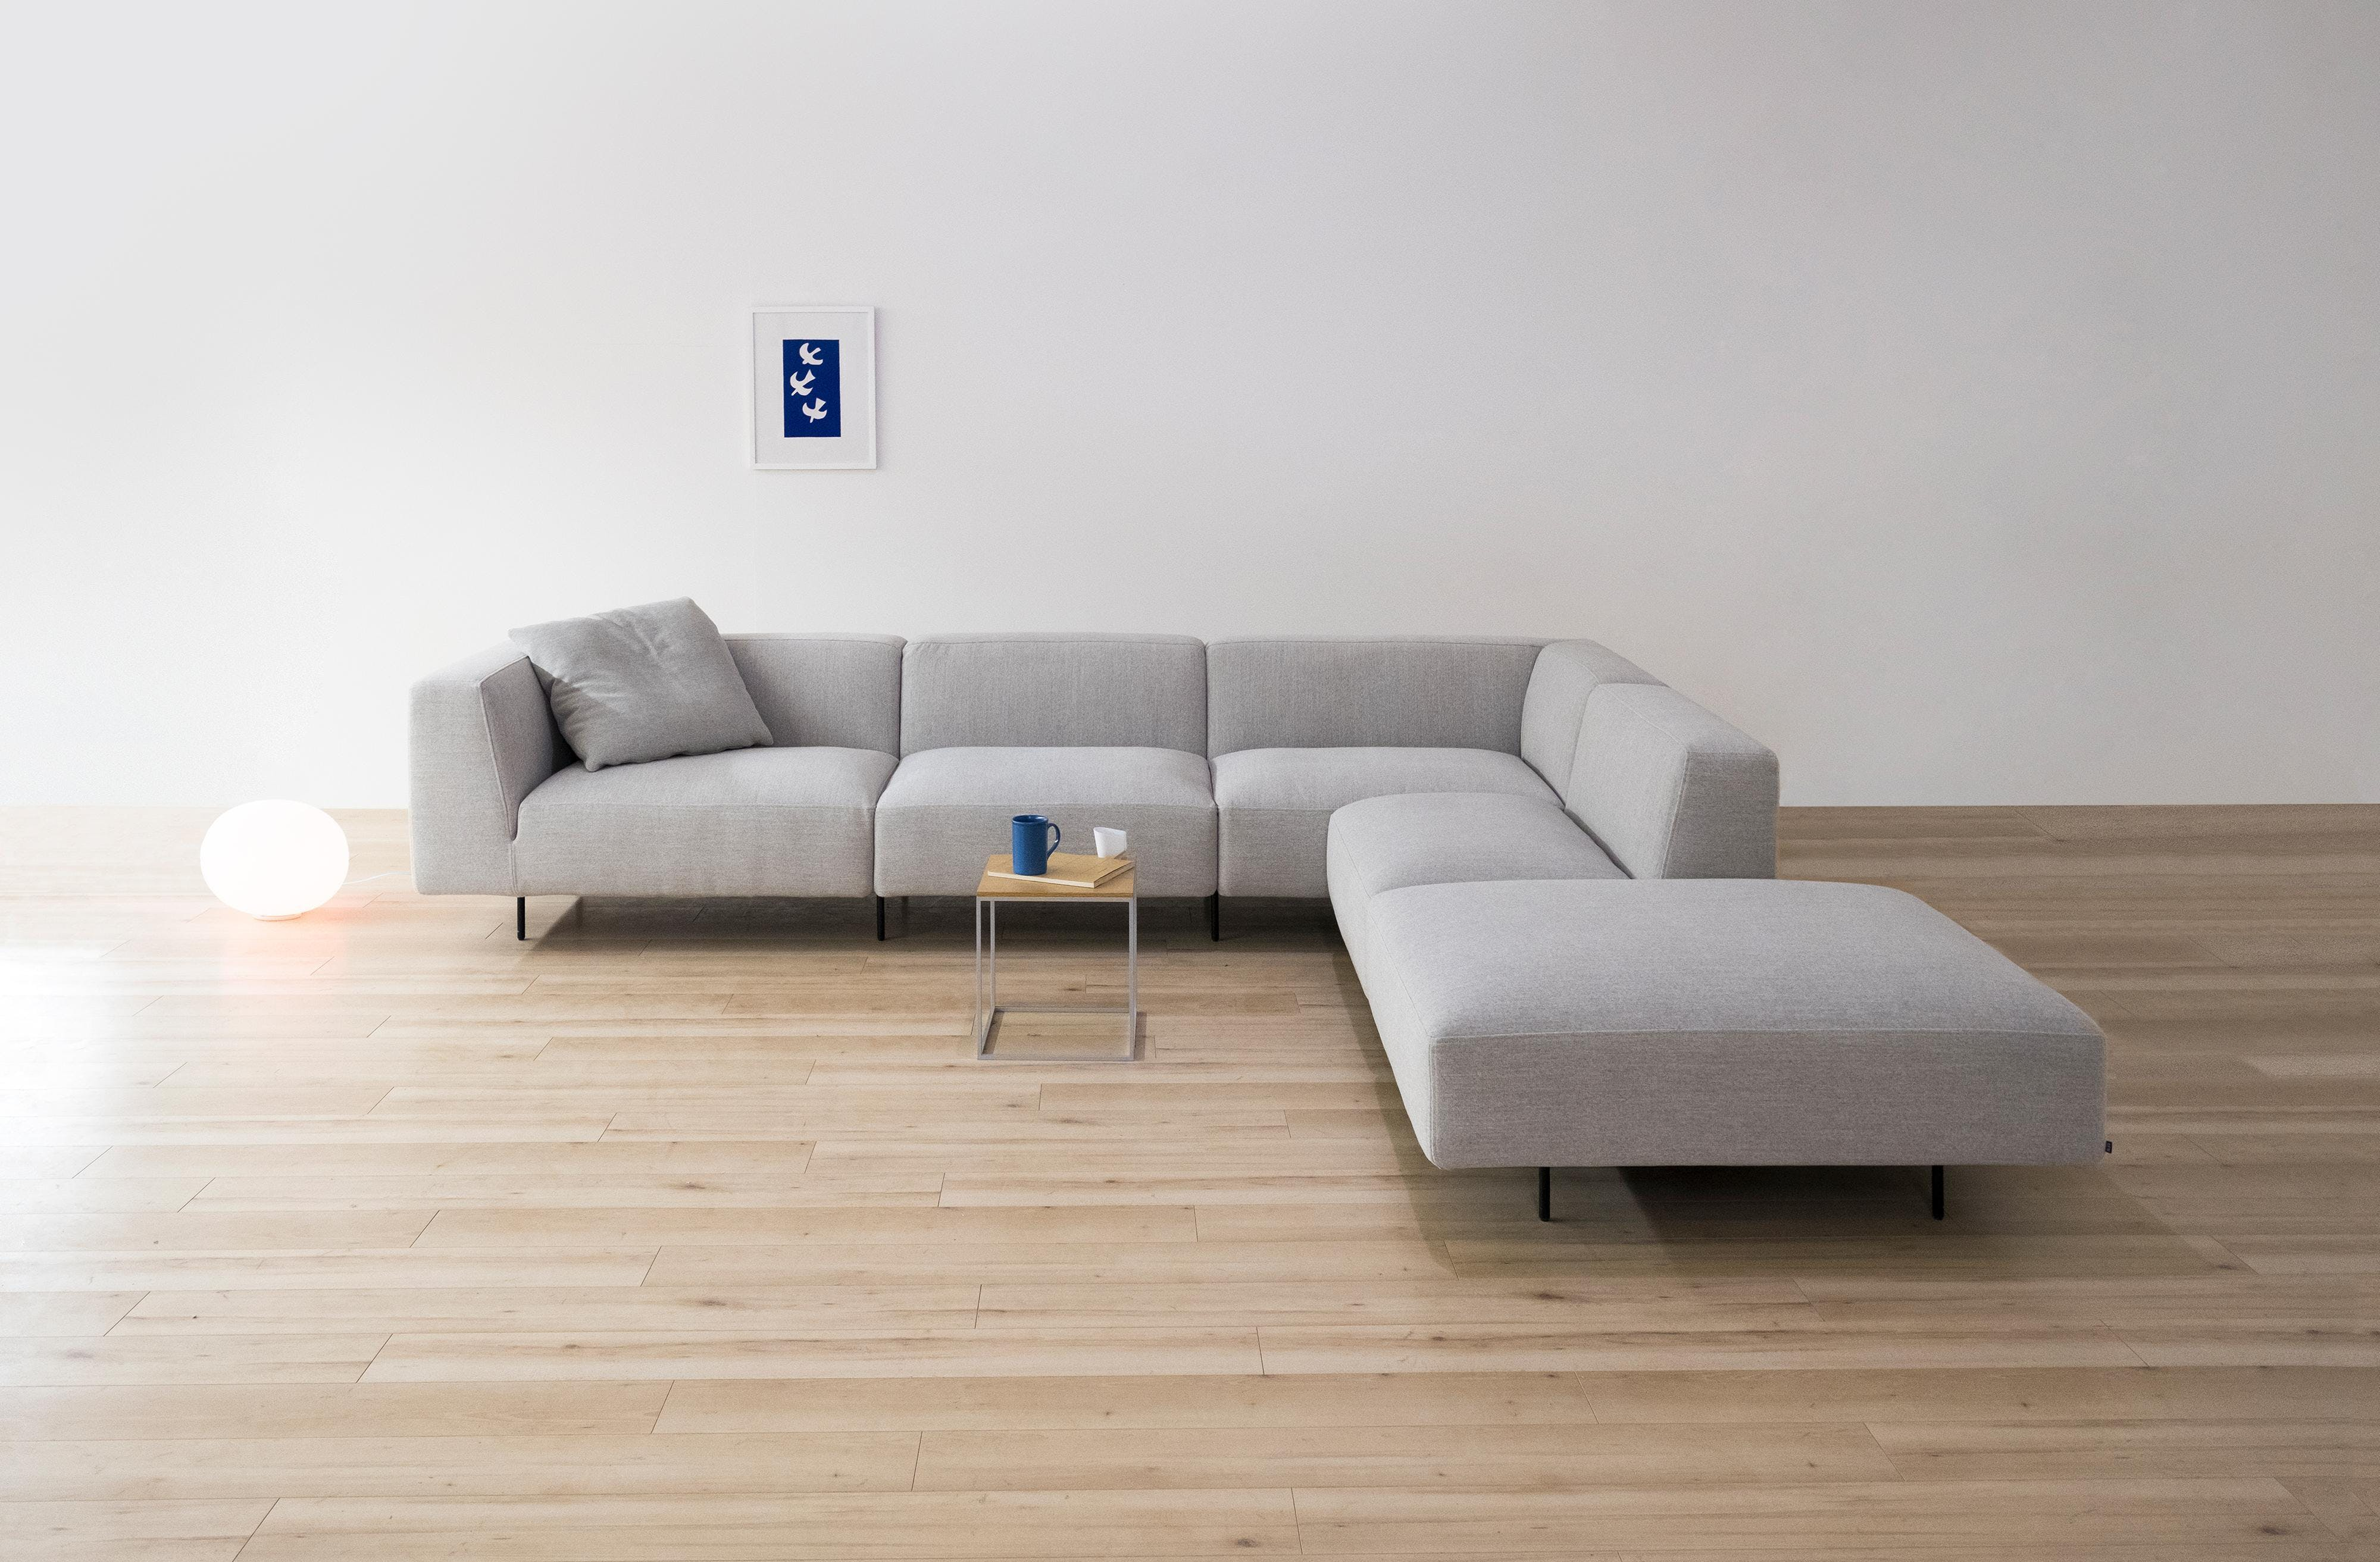 Endless-Sofa-by-Bensen-at-Haute-Living